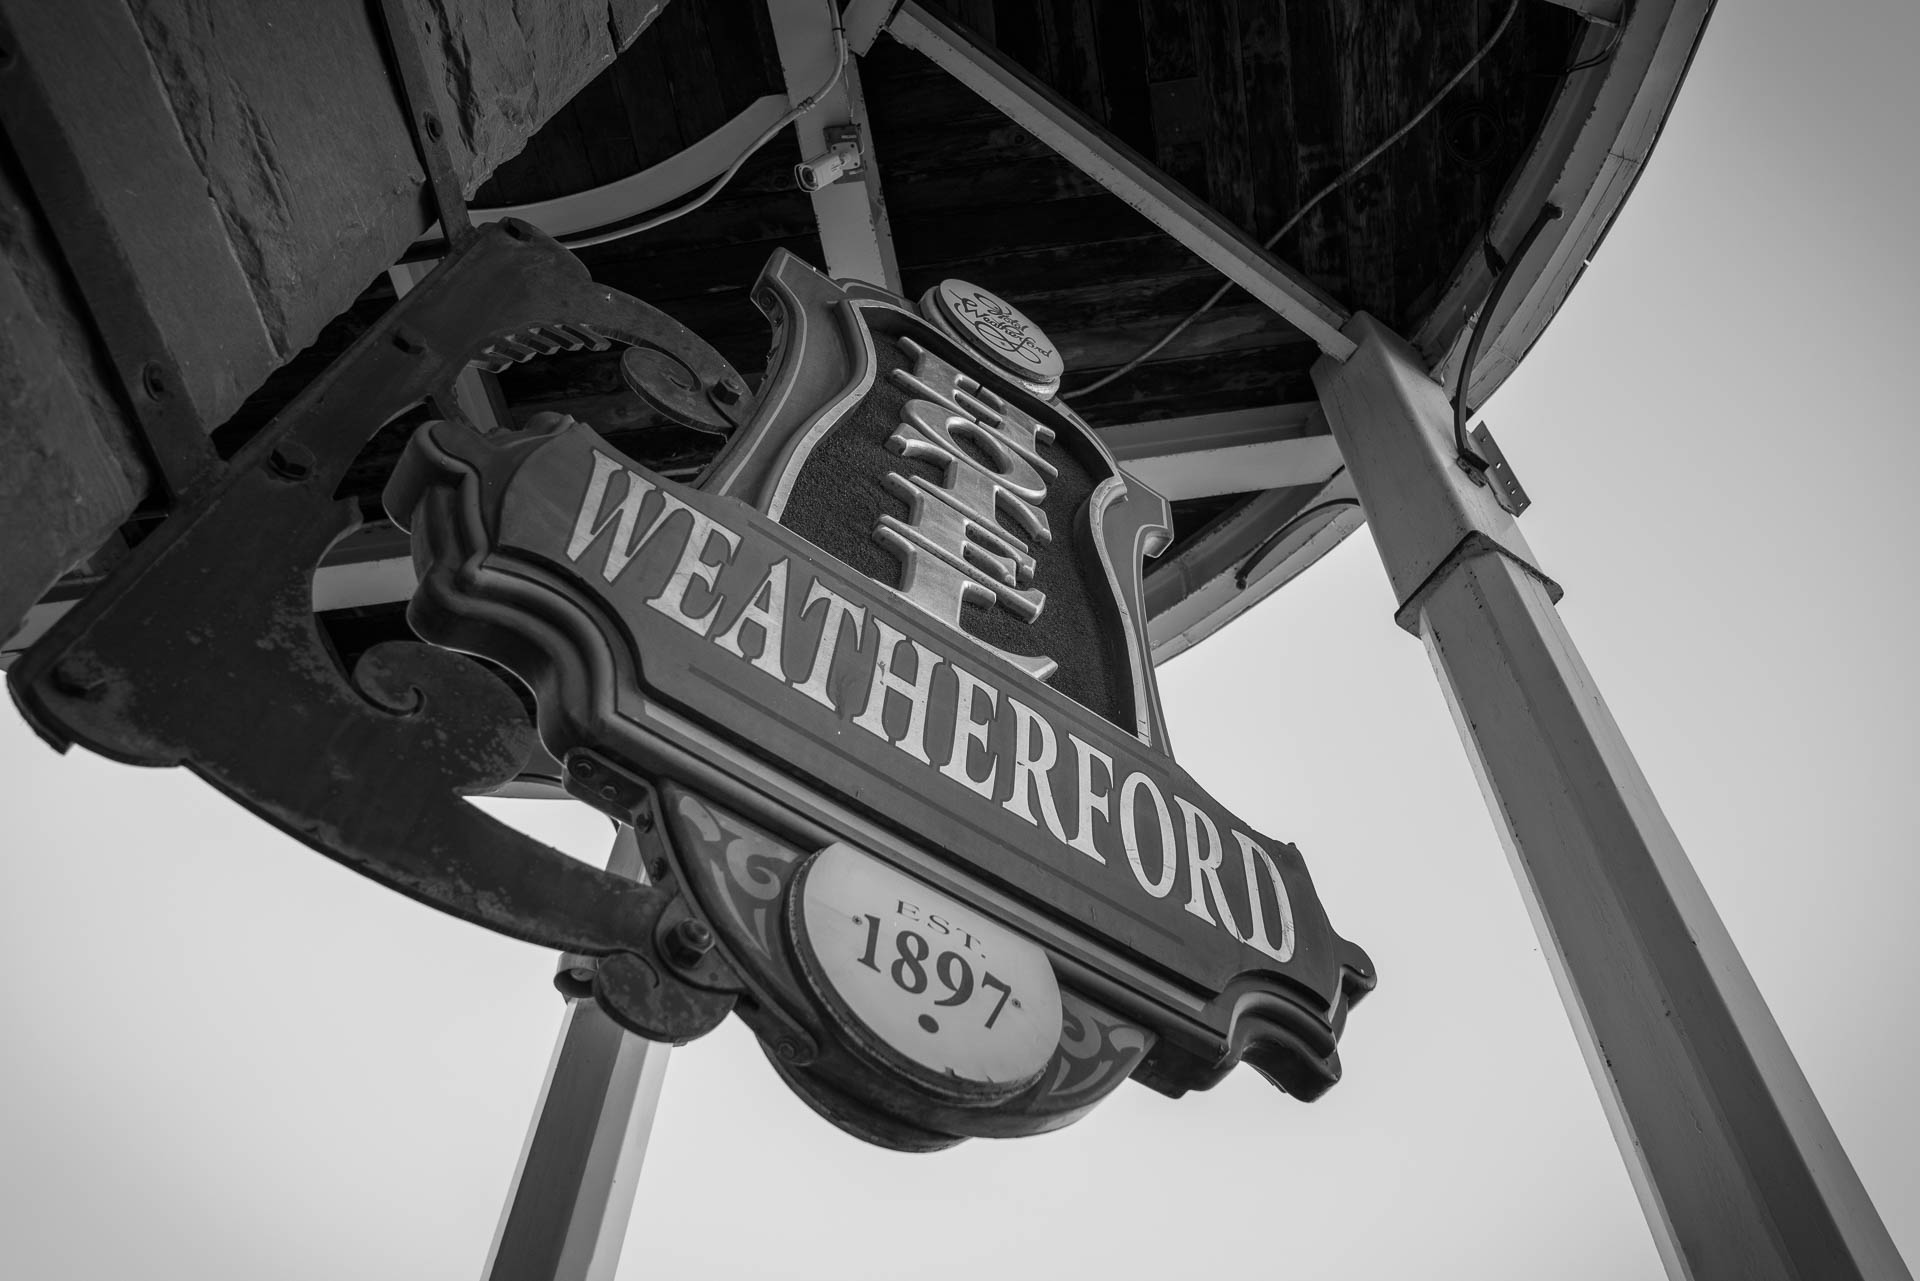 the weatherford